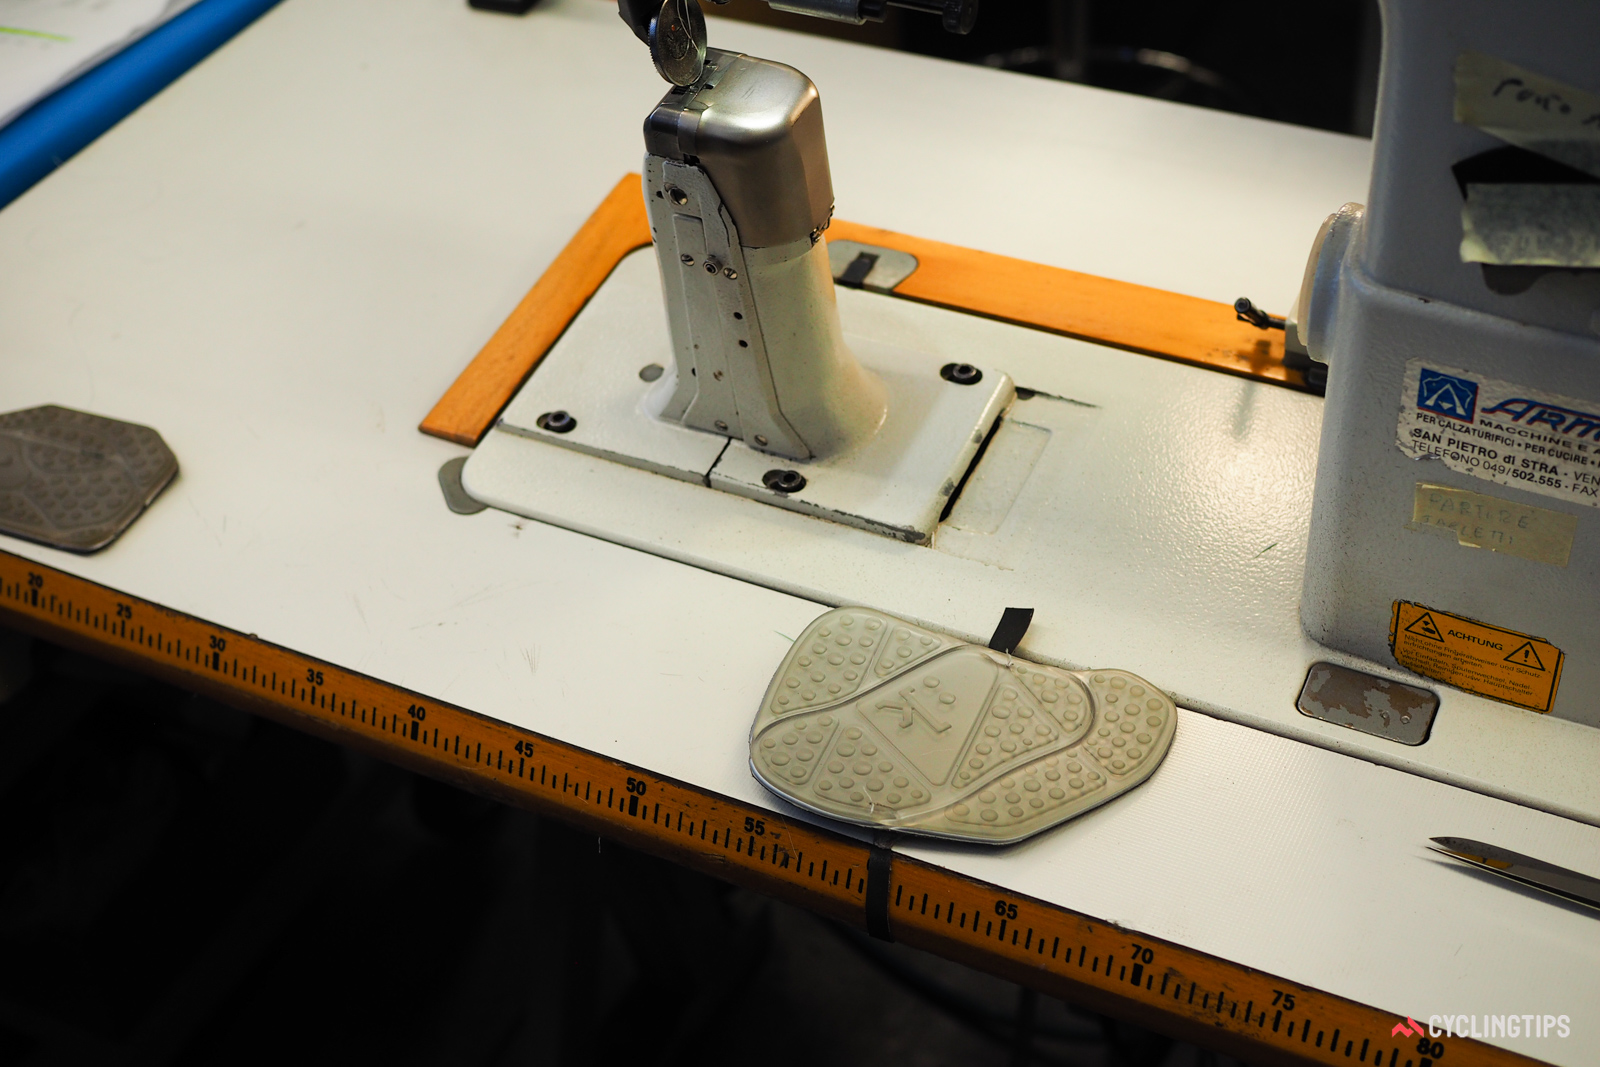 A pair of gel armrest pads sees some alternate duty at the sewing stations.